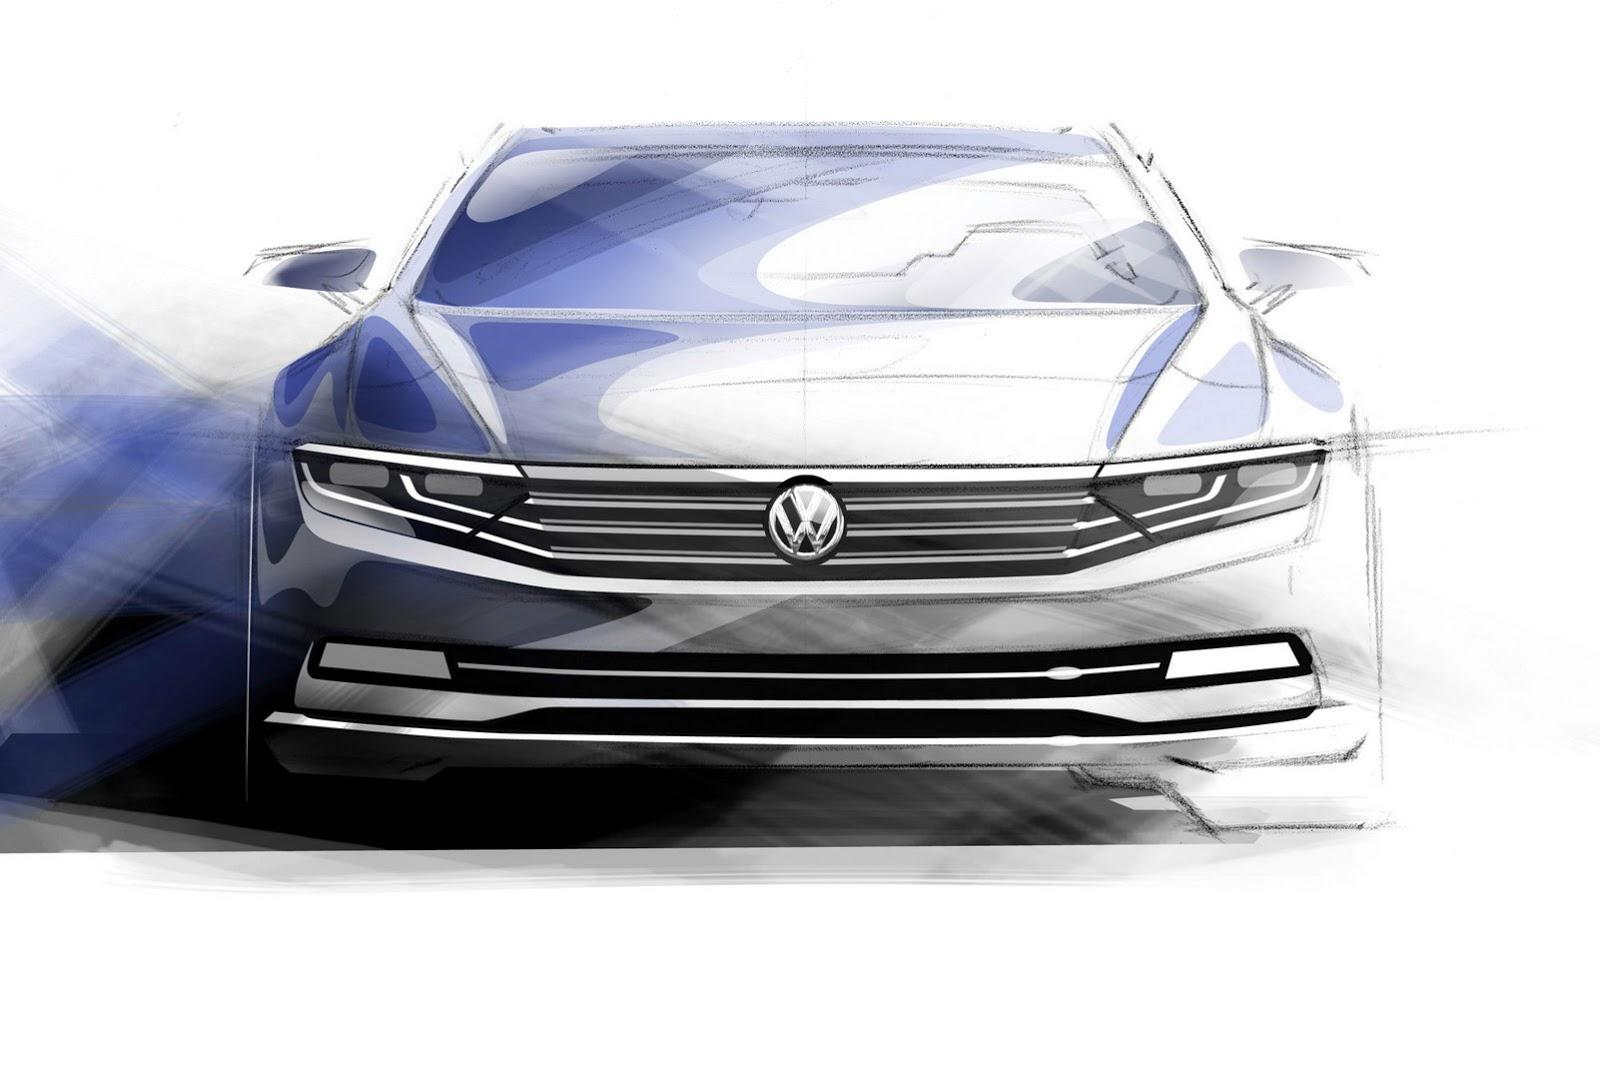 Volkswagen Passat photo 123551